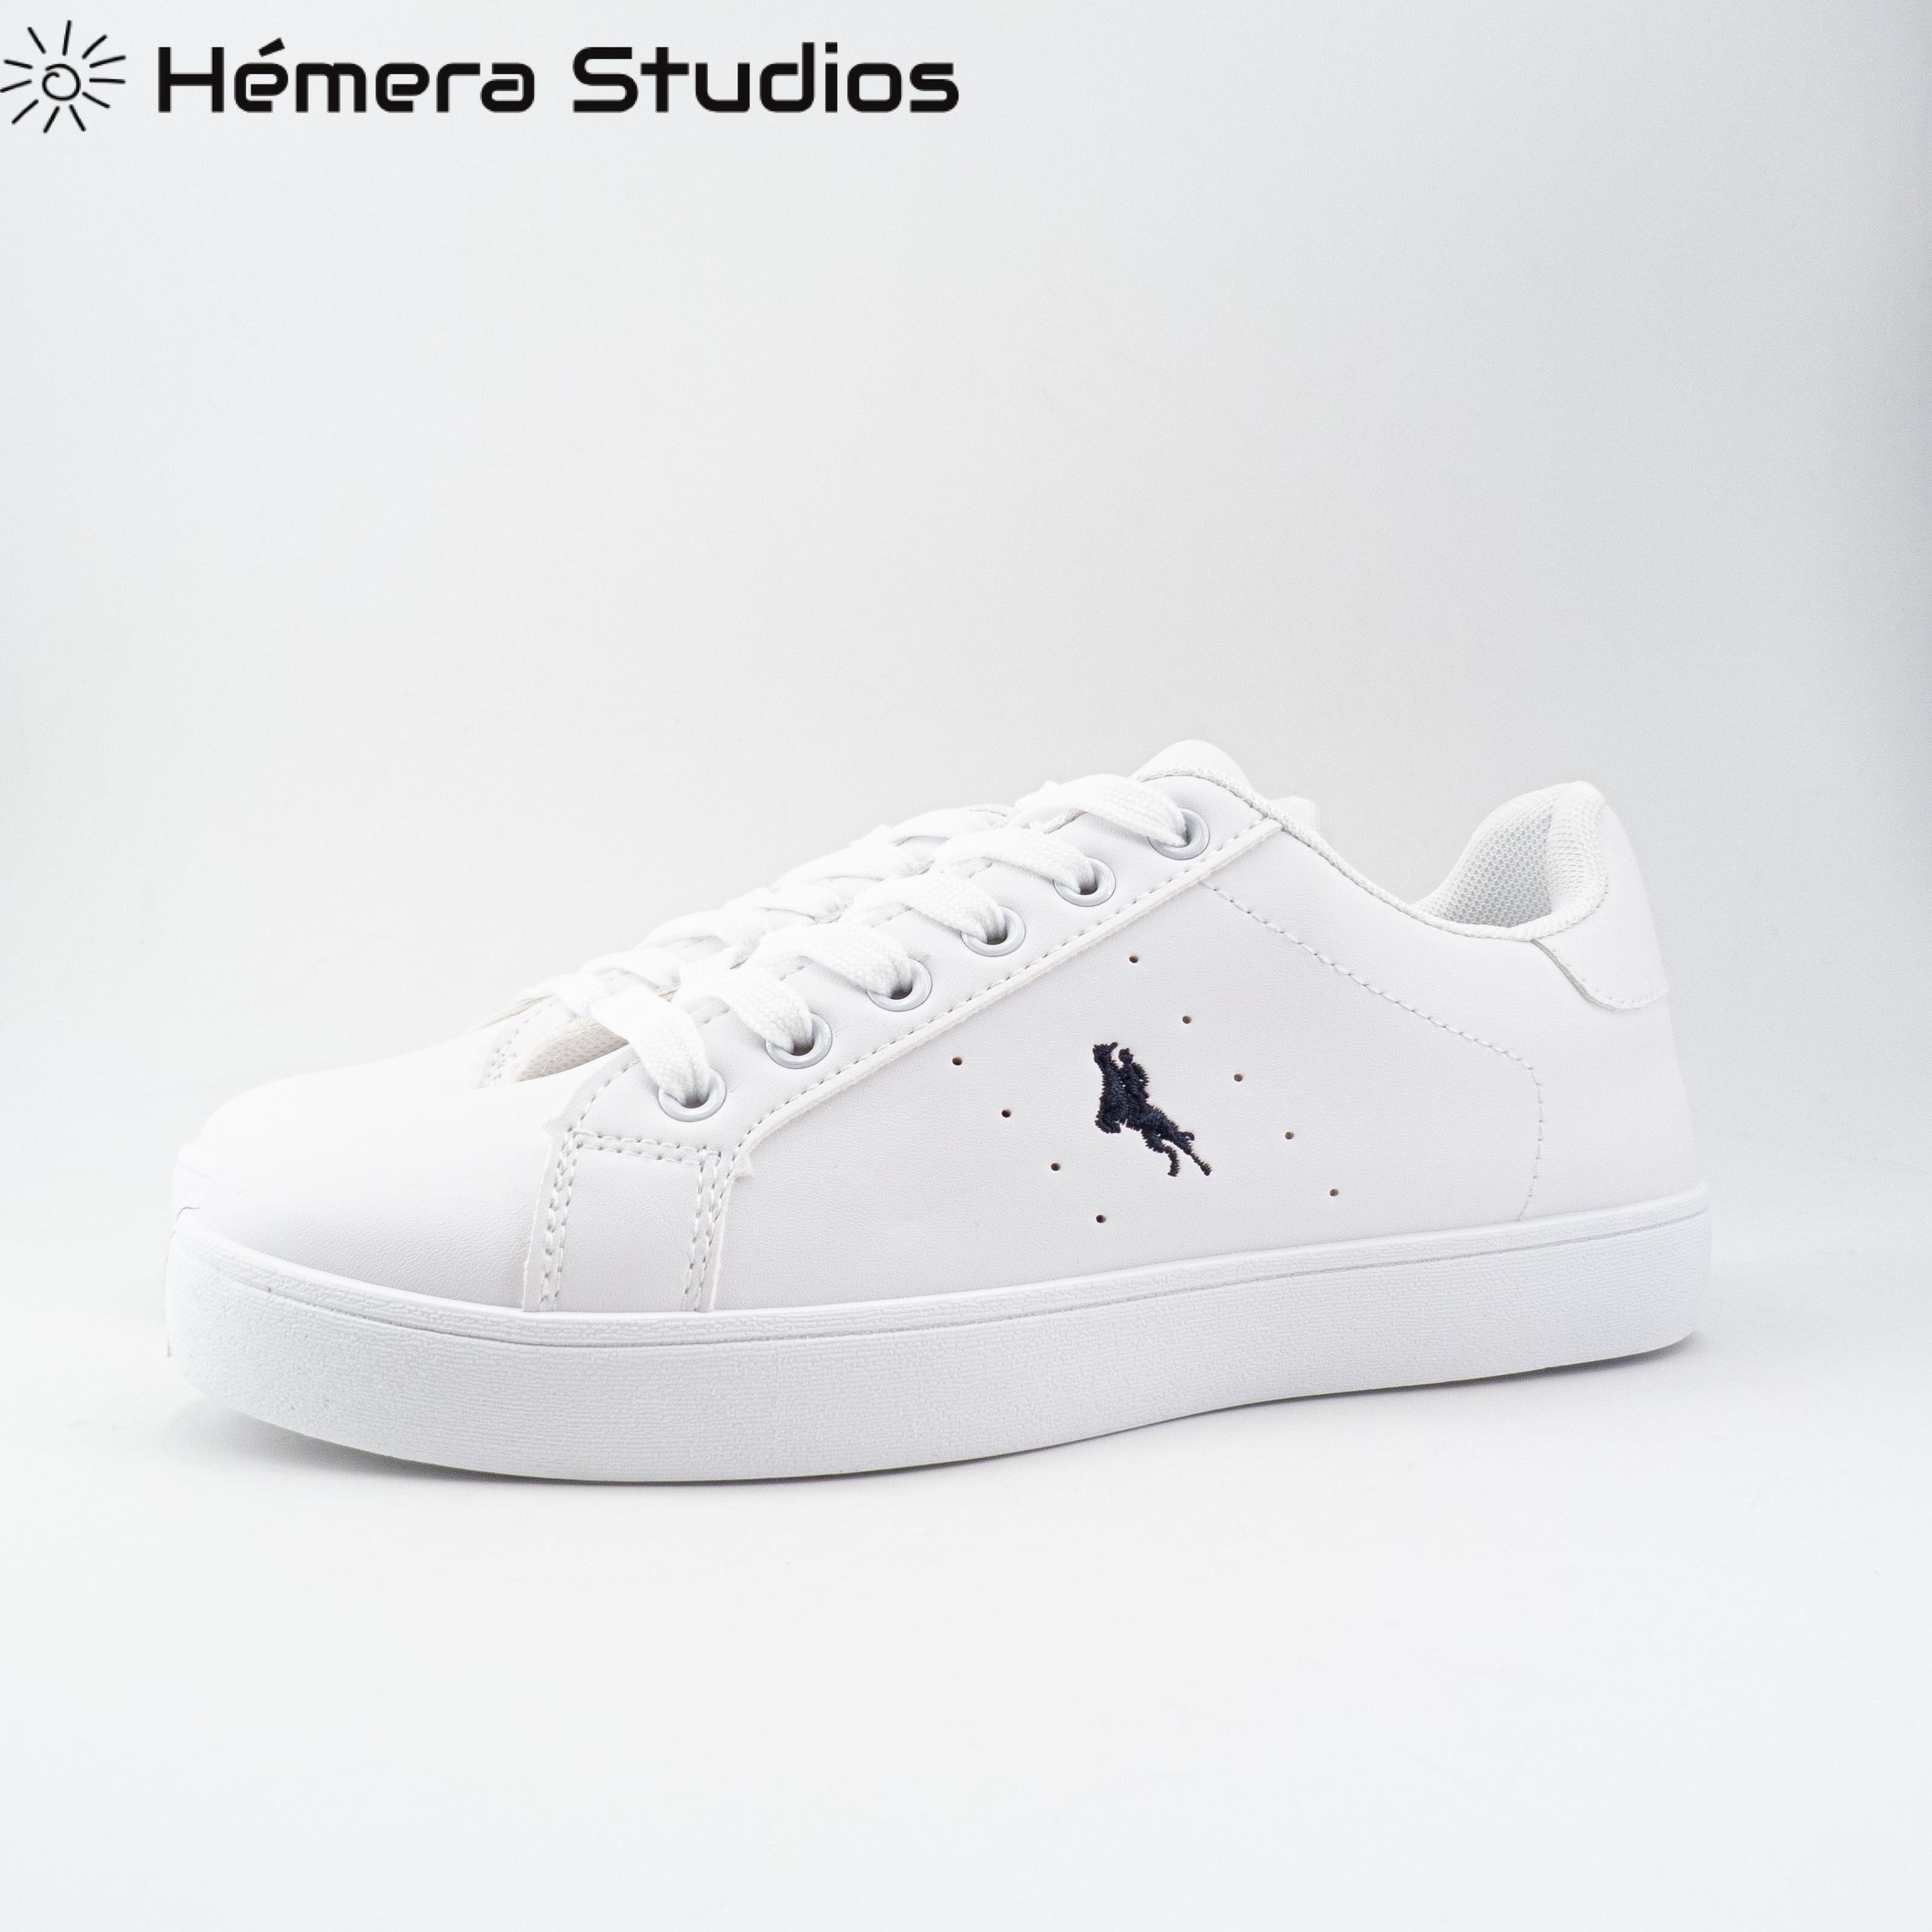 Women's Shoes Sports Casual Woman With Cords Platform Shoes Woman In White Color With Stamping Animal